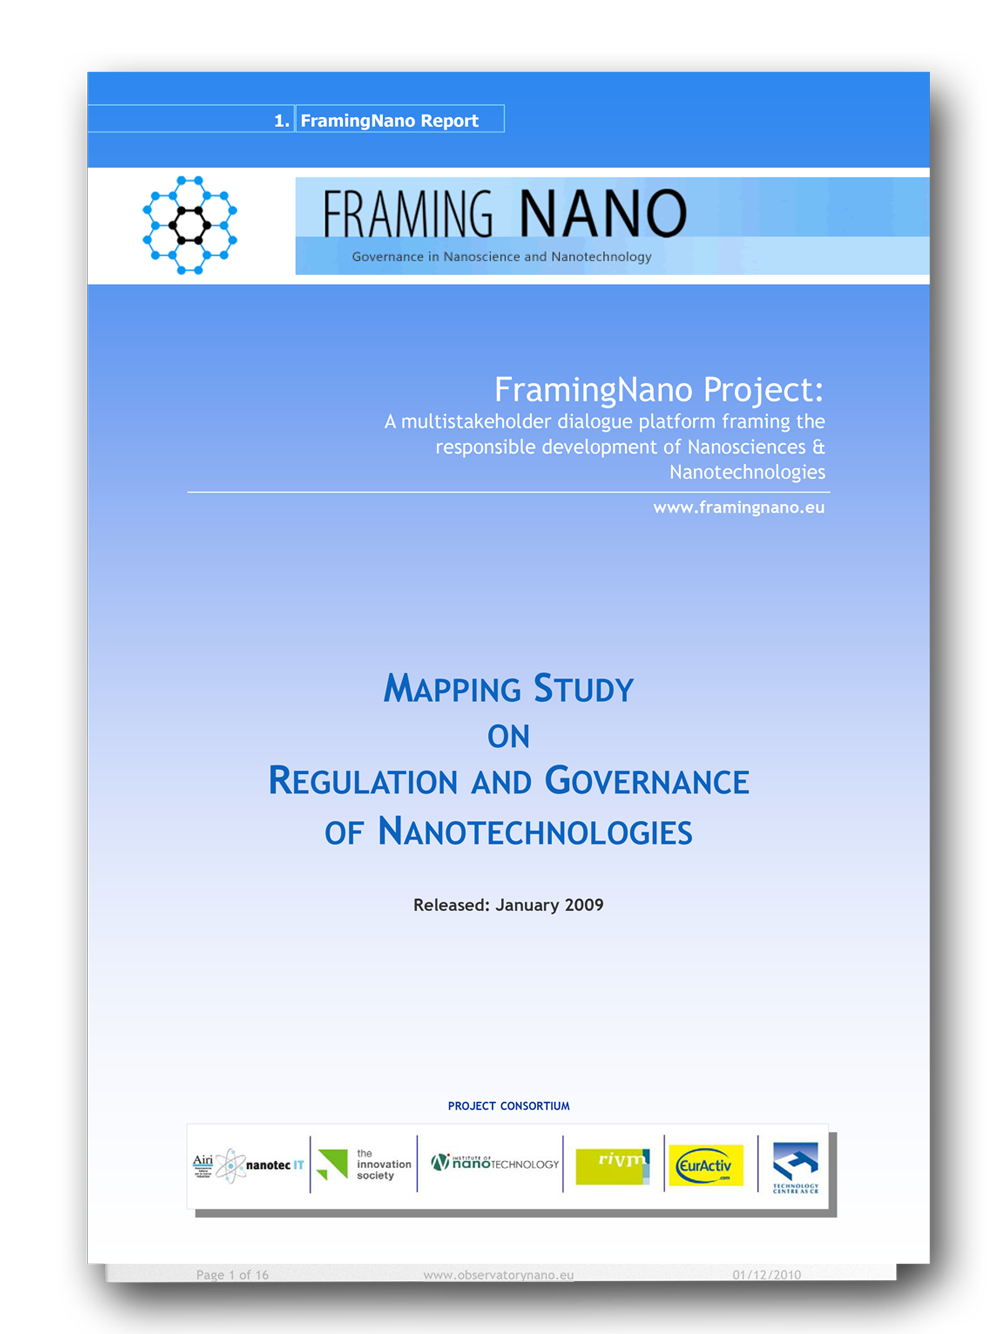 image: Mapping study on regulation and governance of nanotechnologies, by Framing Nano